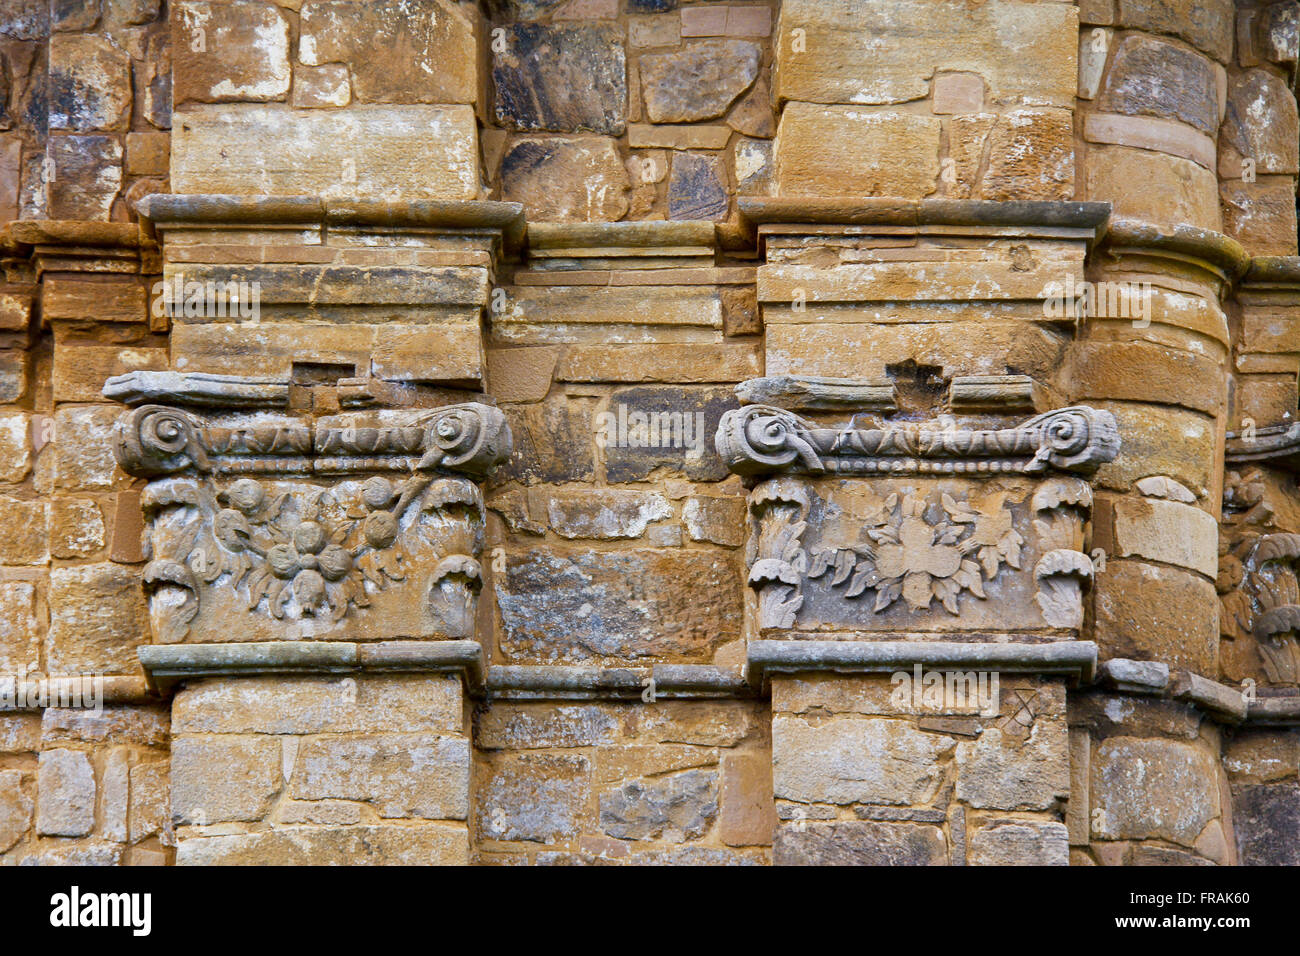 Detail from the ruins at the archaeological site of the Church of Sao Miguel Arcanjo - construction 1735 - Stock Image